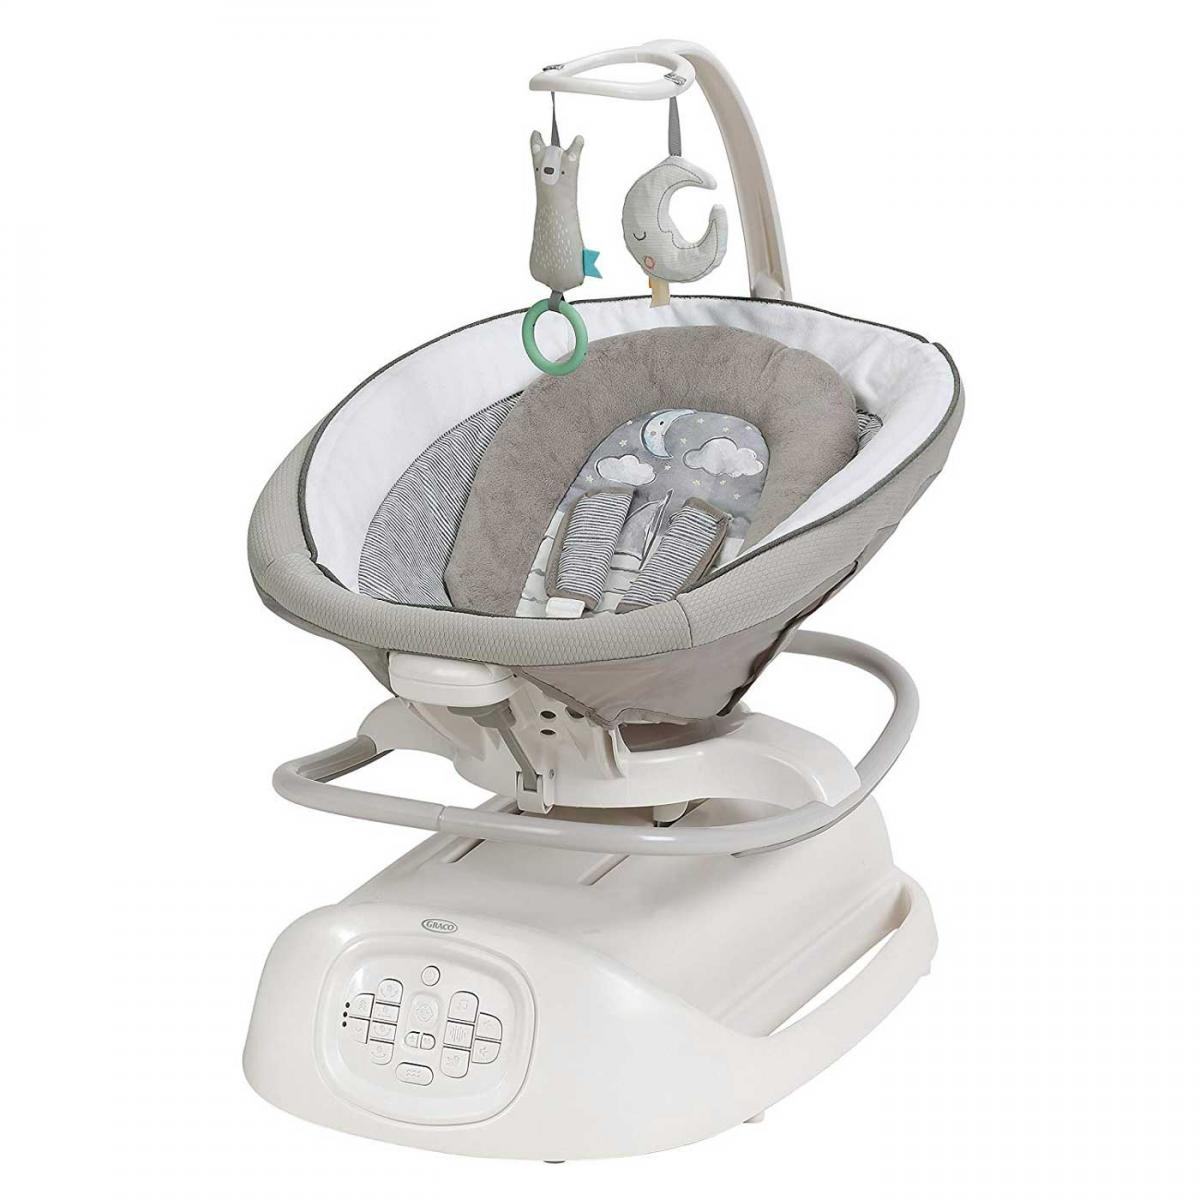 Graco Sense2Soothe Swing with Cry Detection Technology